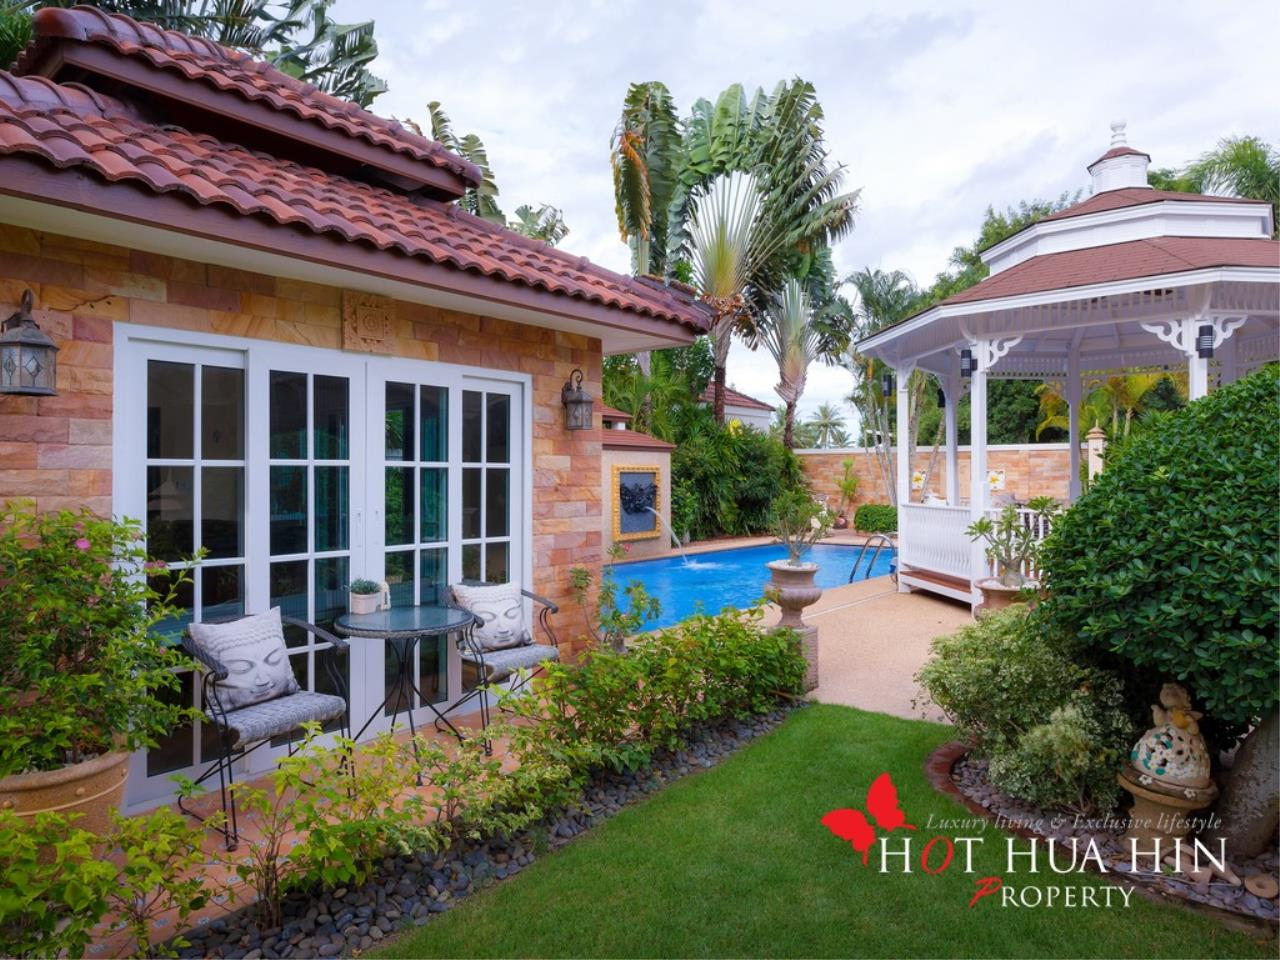 Hot Hua Hin Co. Ltd. Agency's Well Built Home With Stunning Gardens And Two Full Kitchens 25